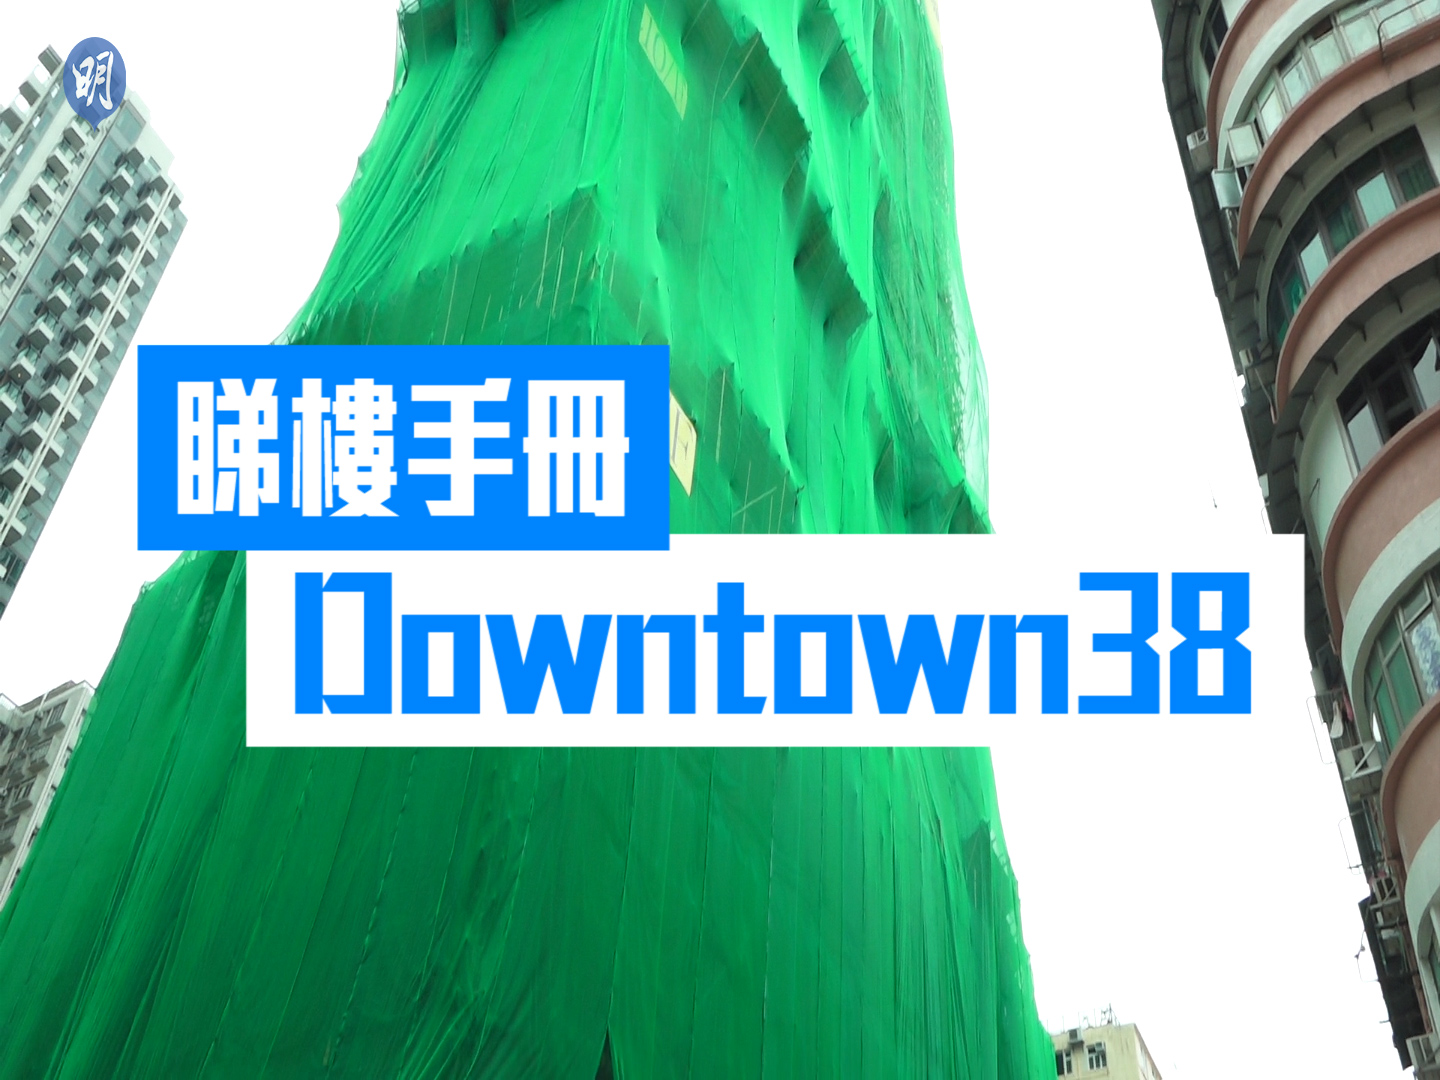 Downtown38